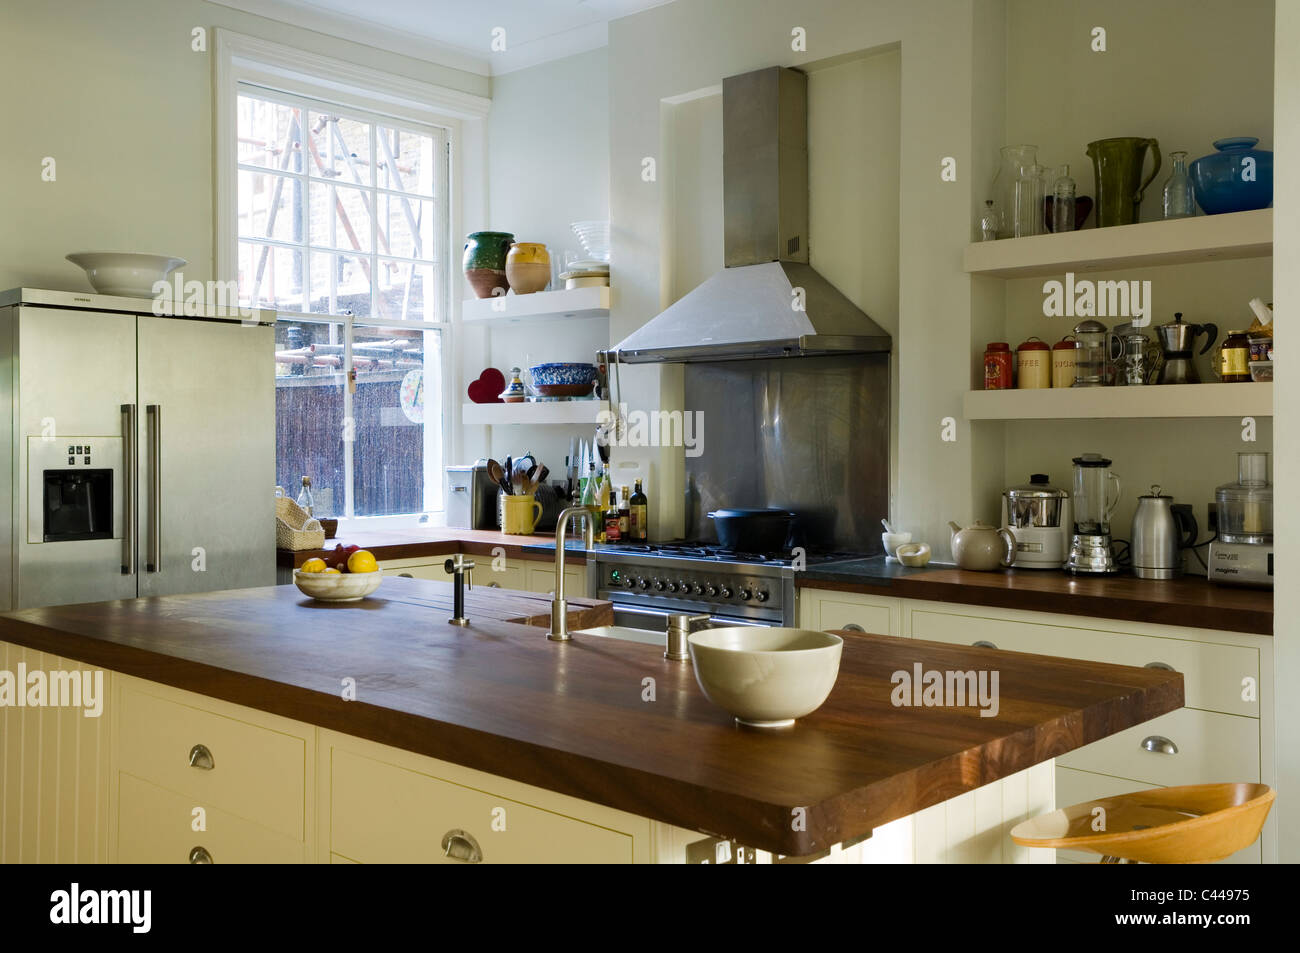 belfast sink stockfotos belfast sink bilder alamy. Black Bedroom Furniture Sets. Home Design Ideas